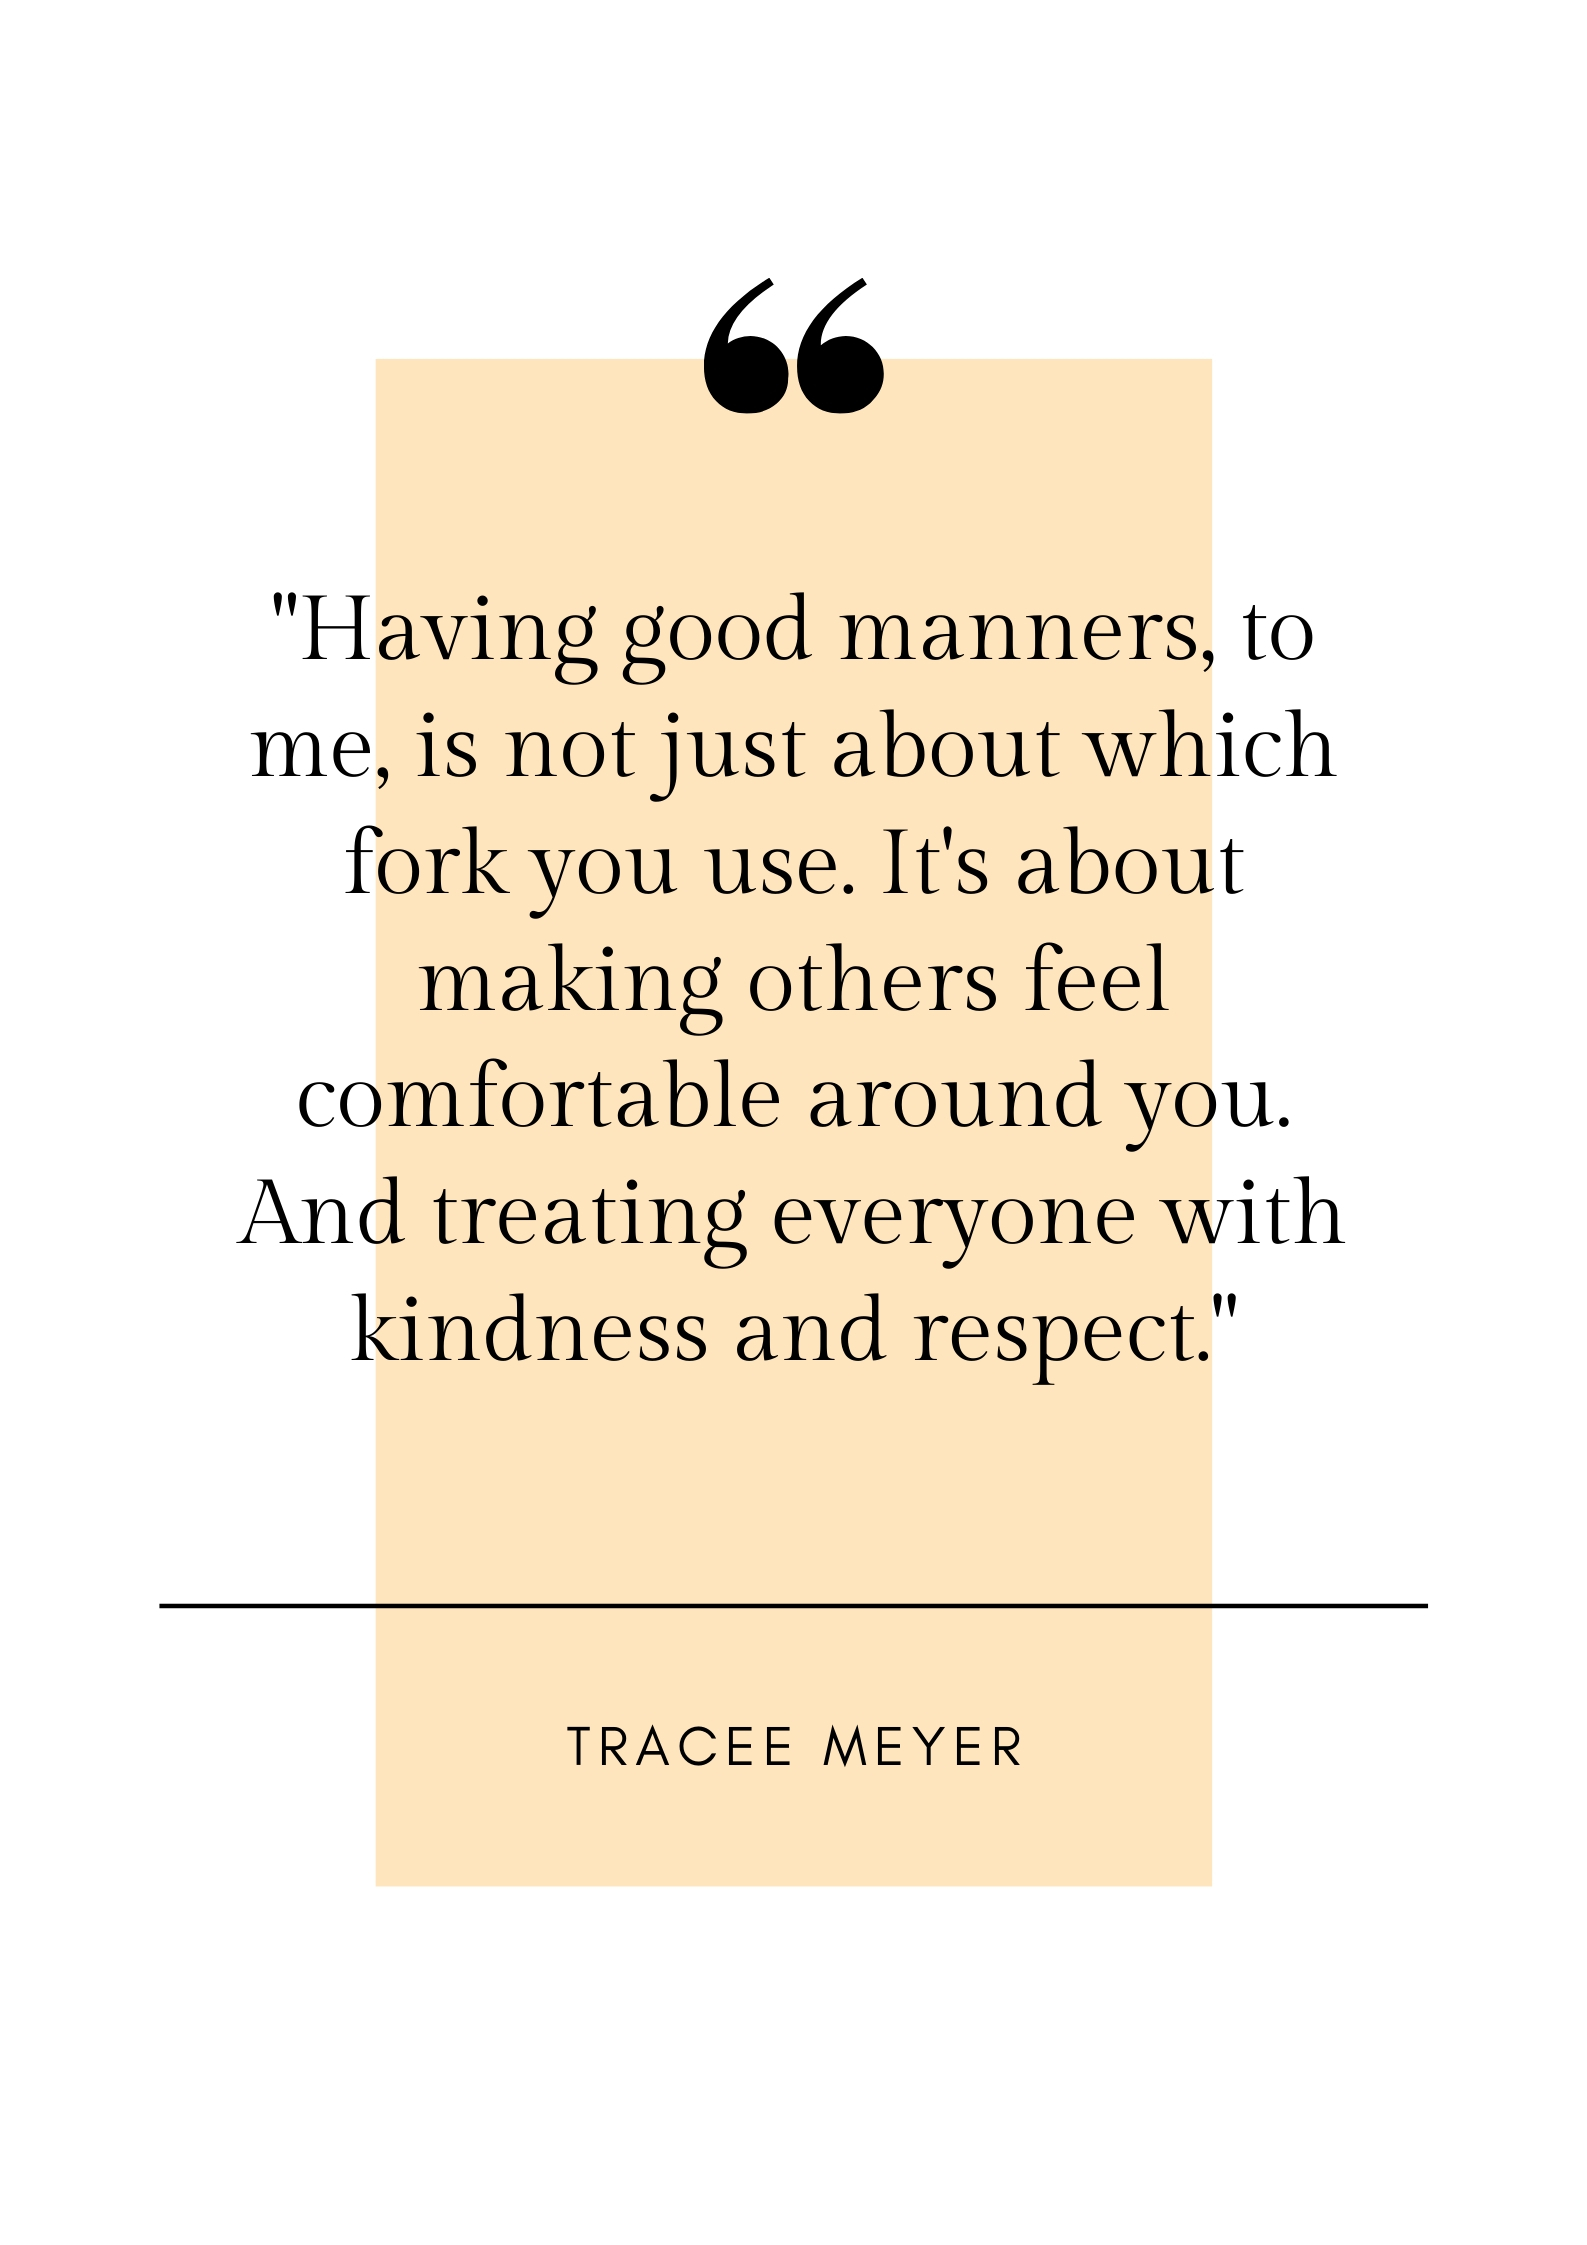 quote on manners